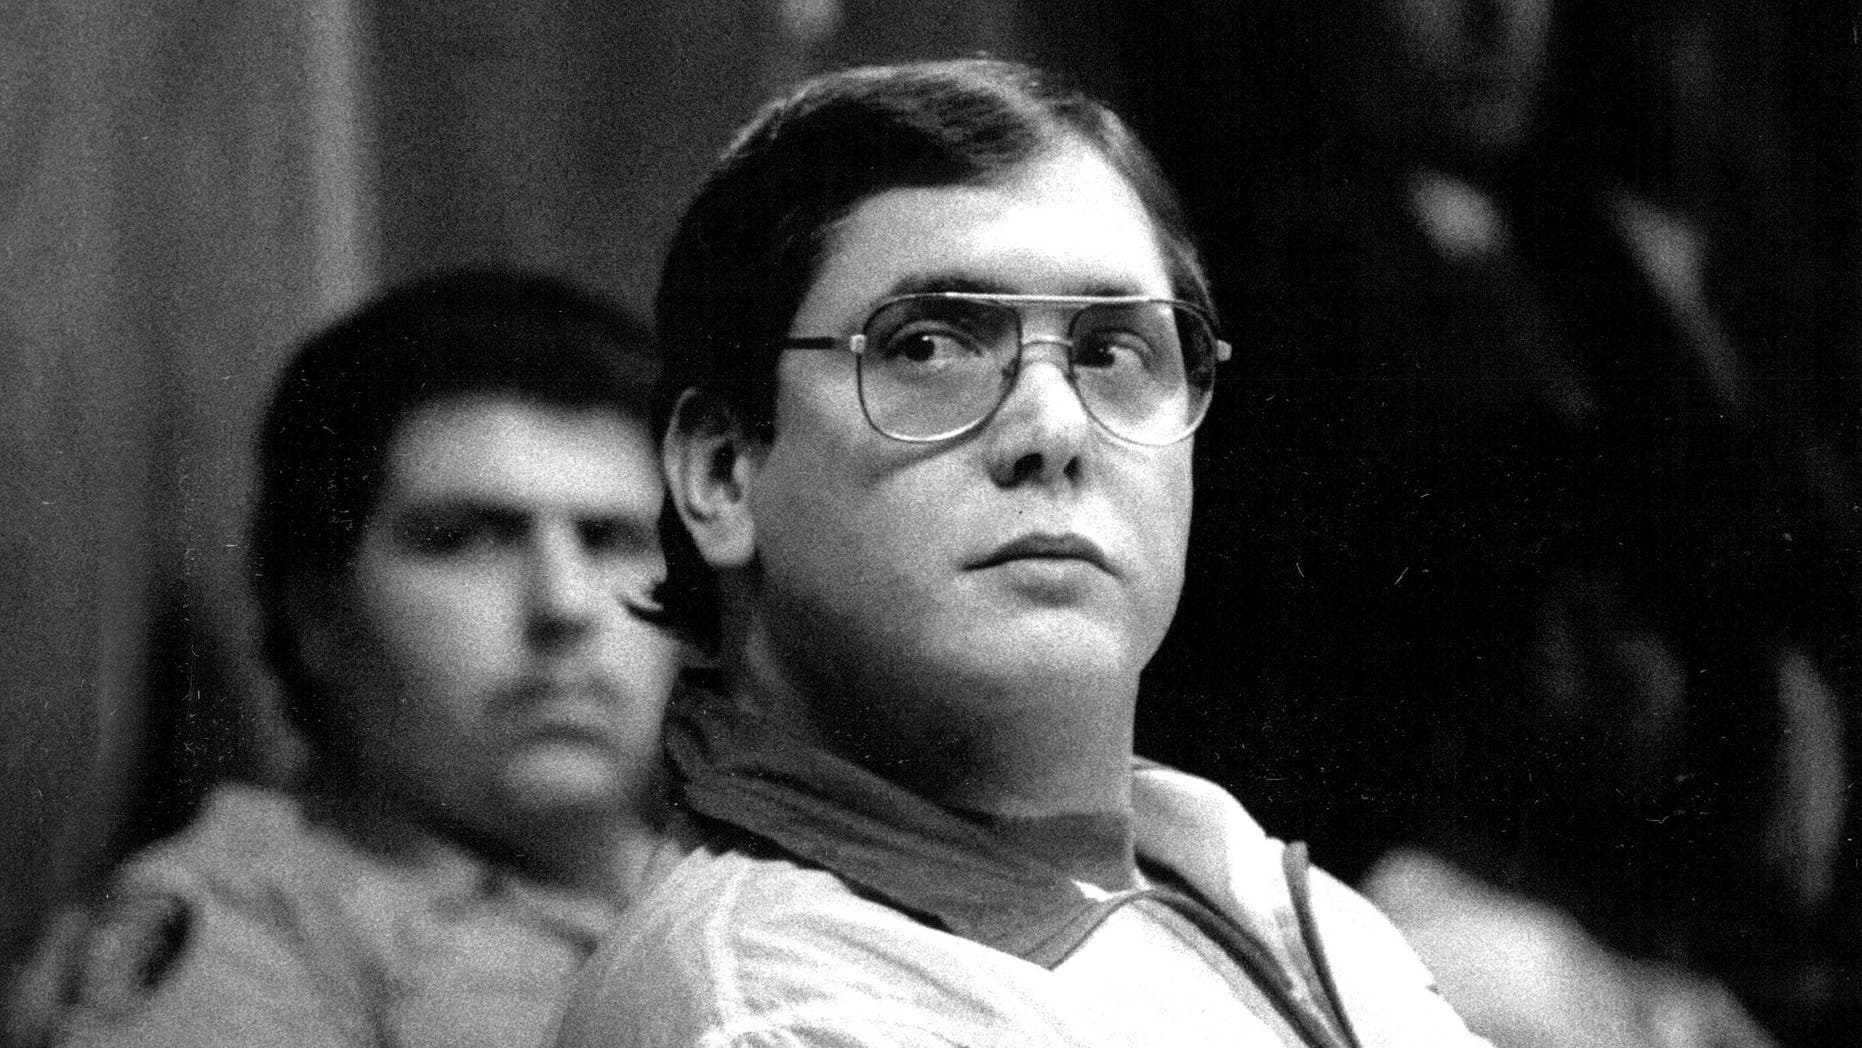 In a 1988 photo, Manuel Pardo listens as his sentence is read; he was found guilty of nine counts of murder.